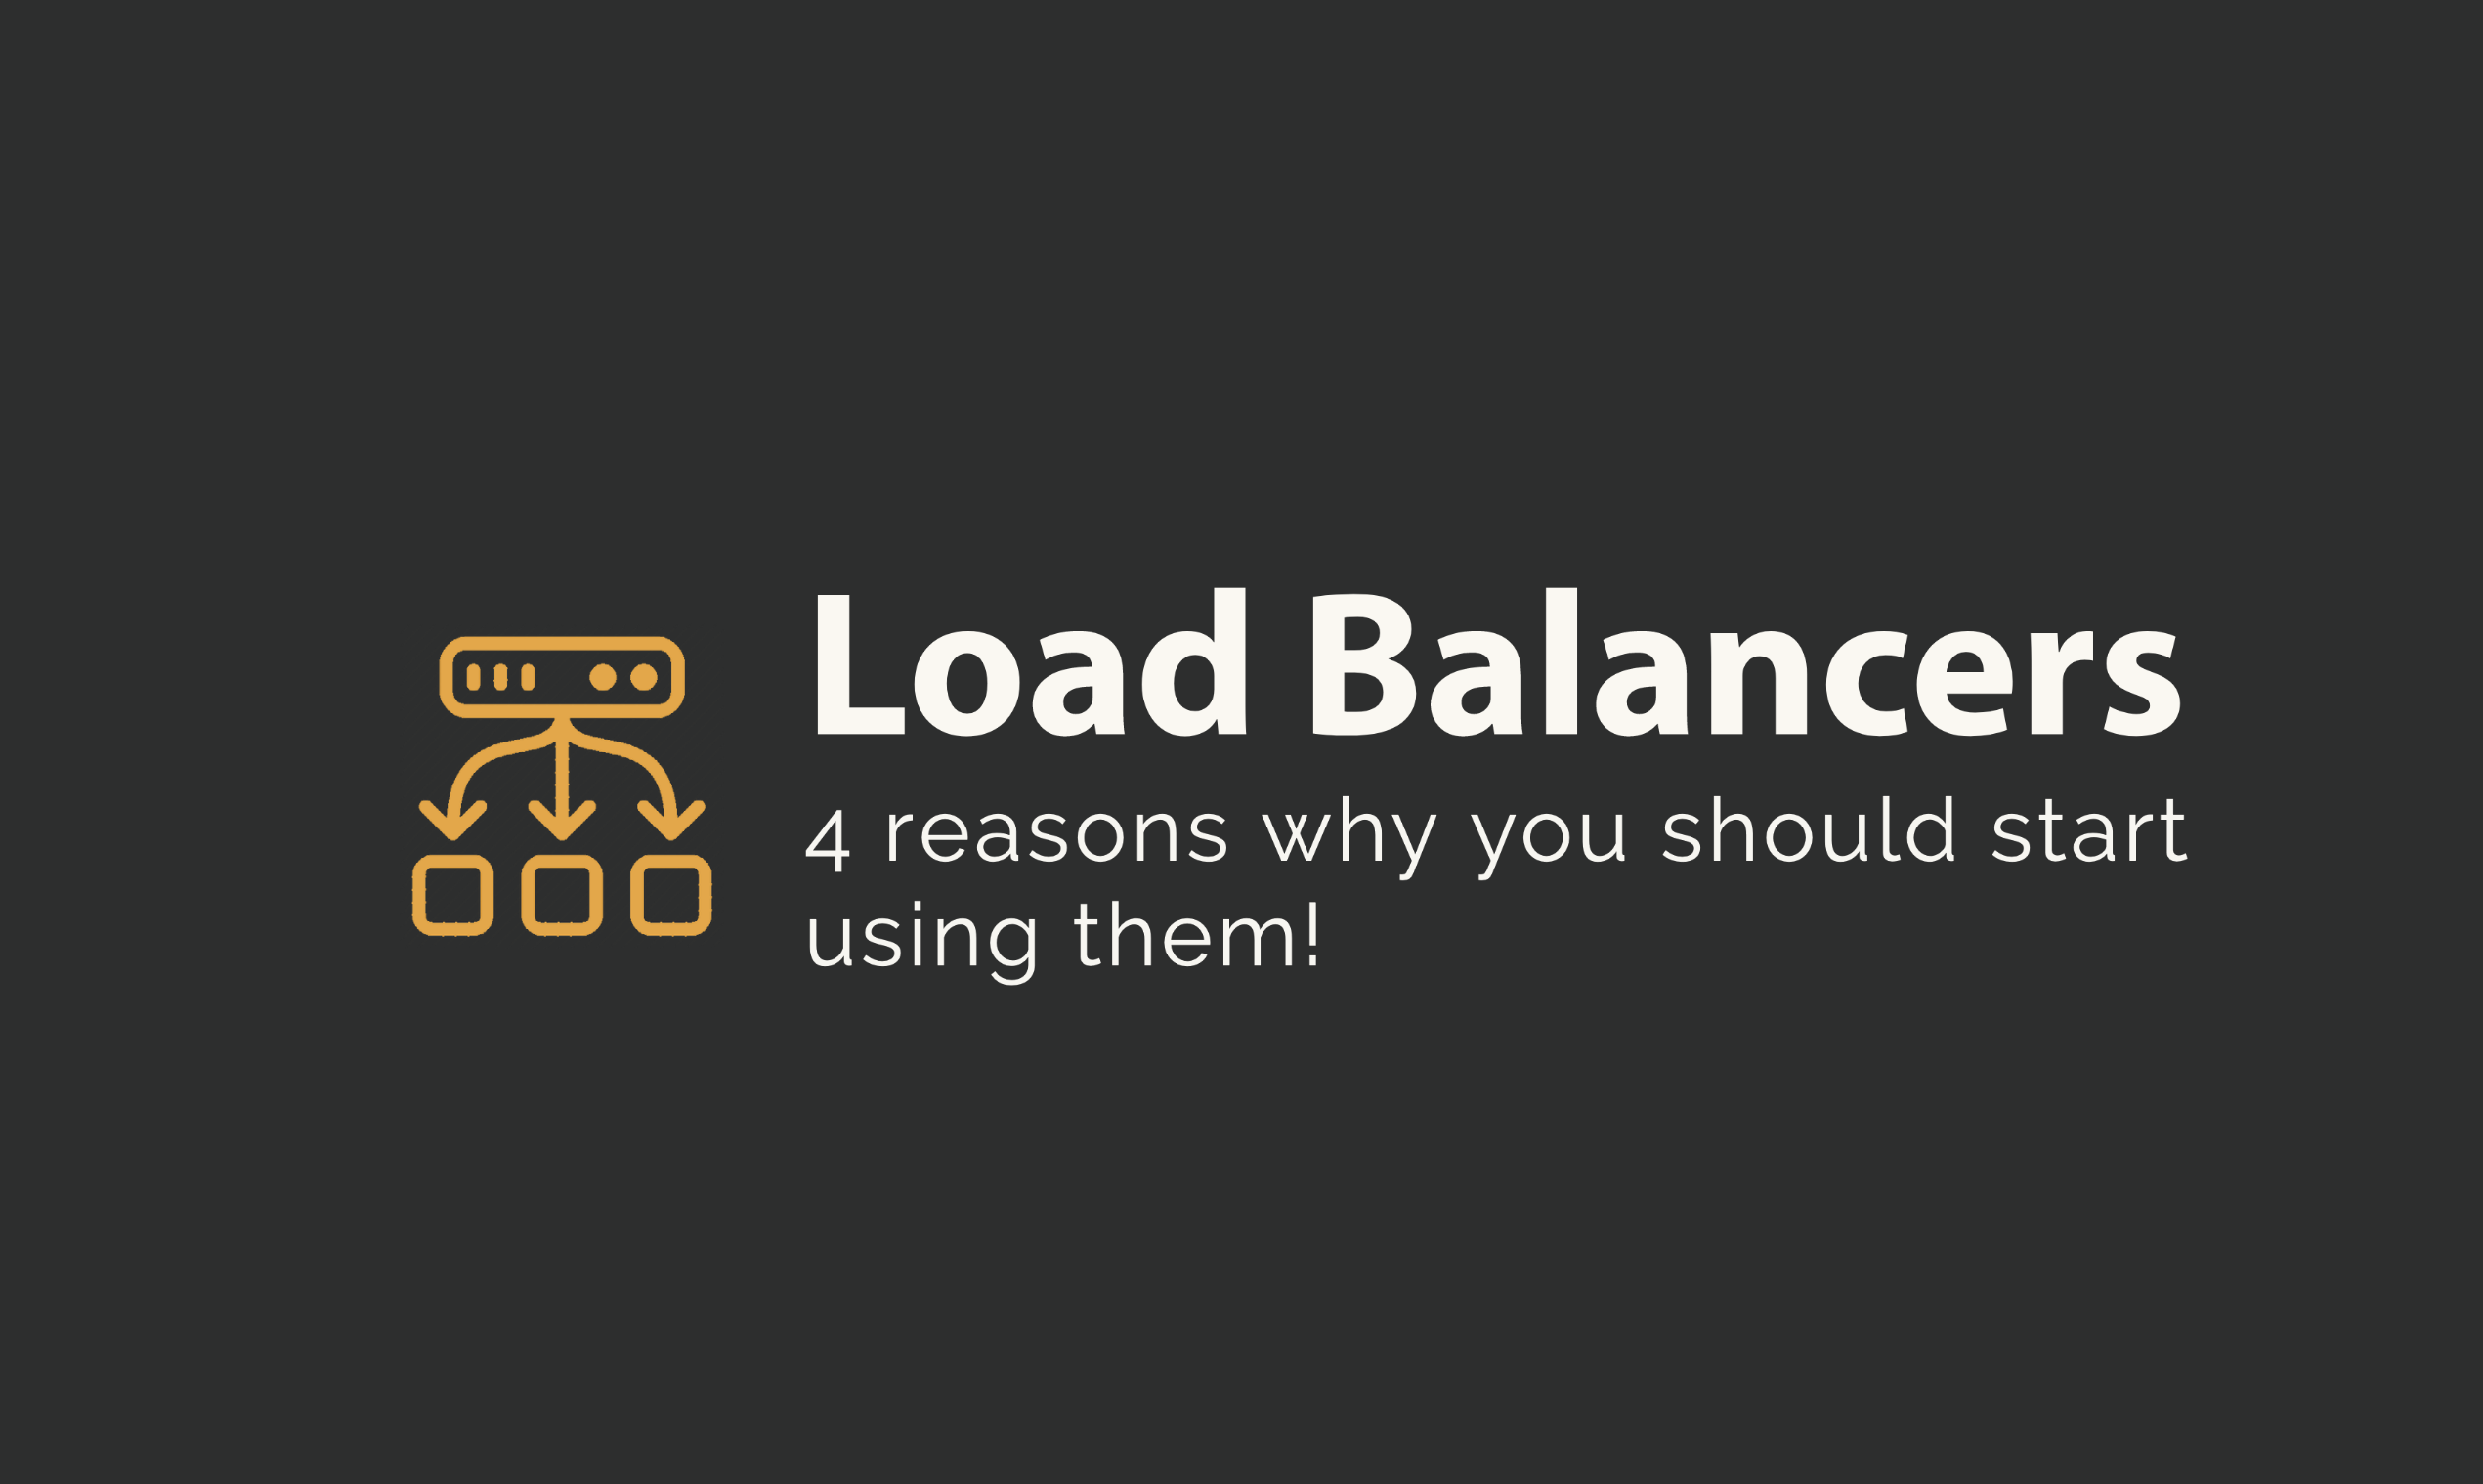 Load Balancers: 4 reasons why you should start using them!